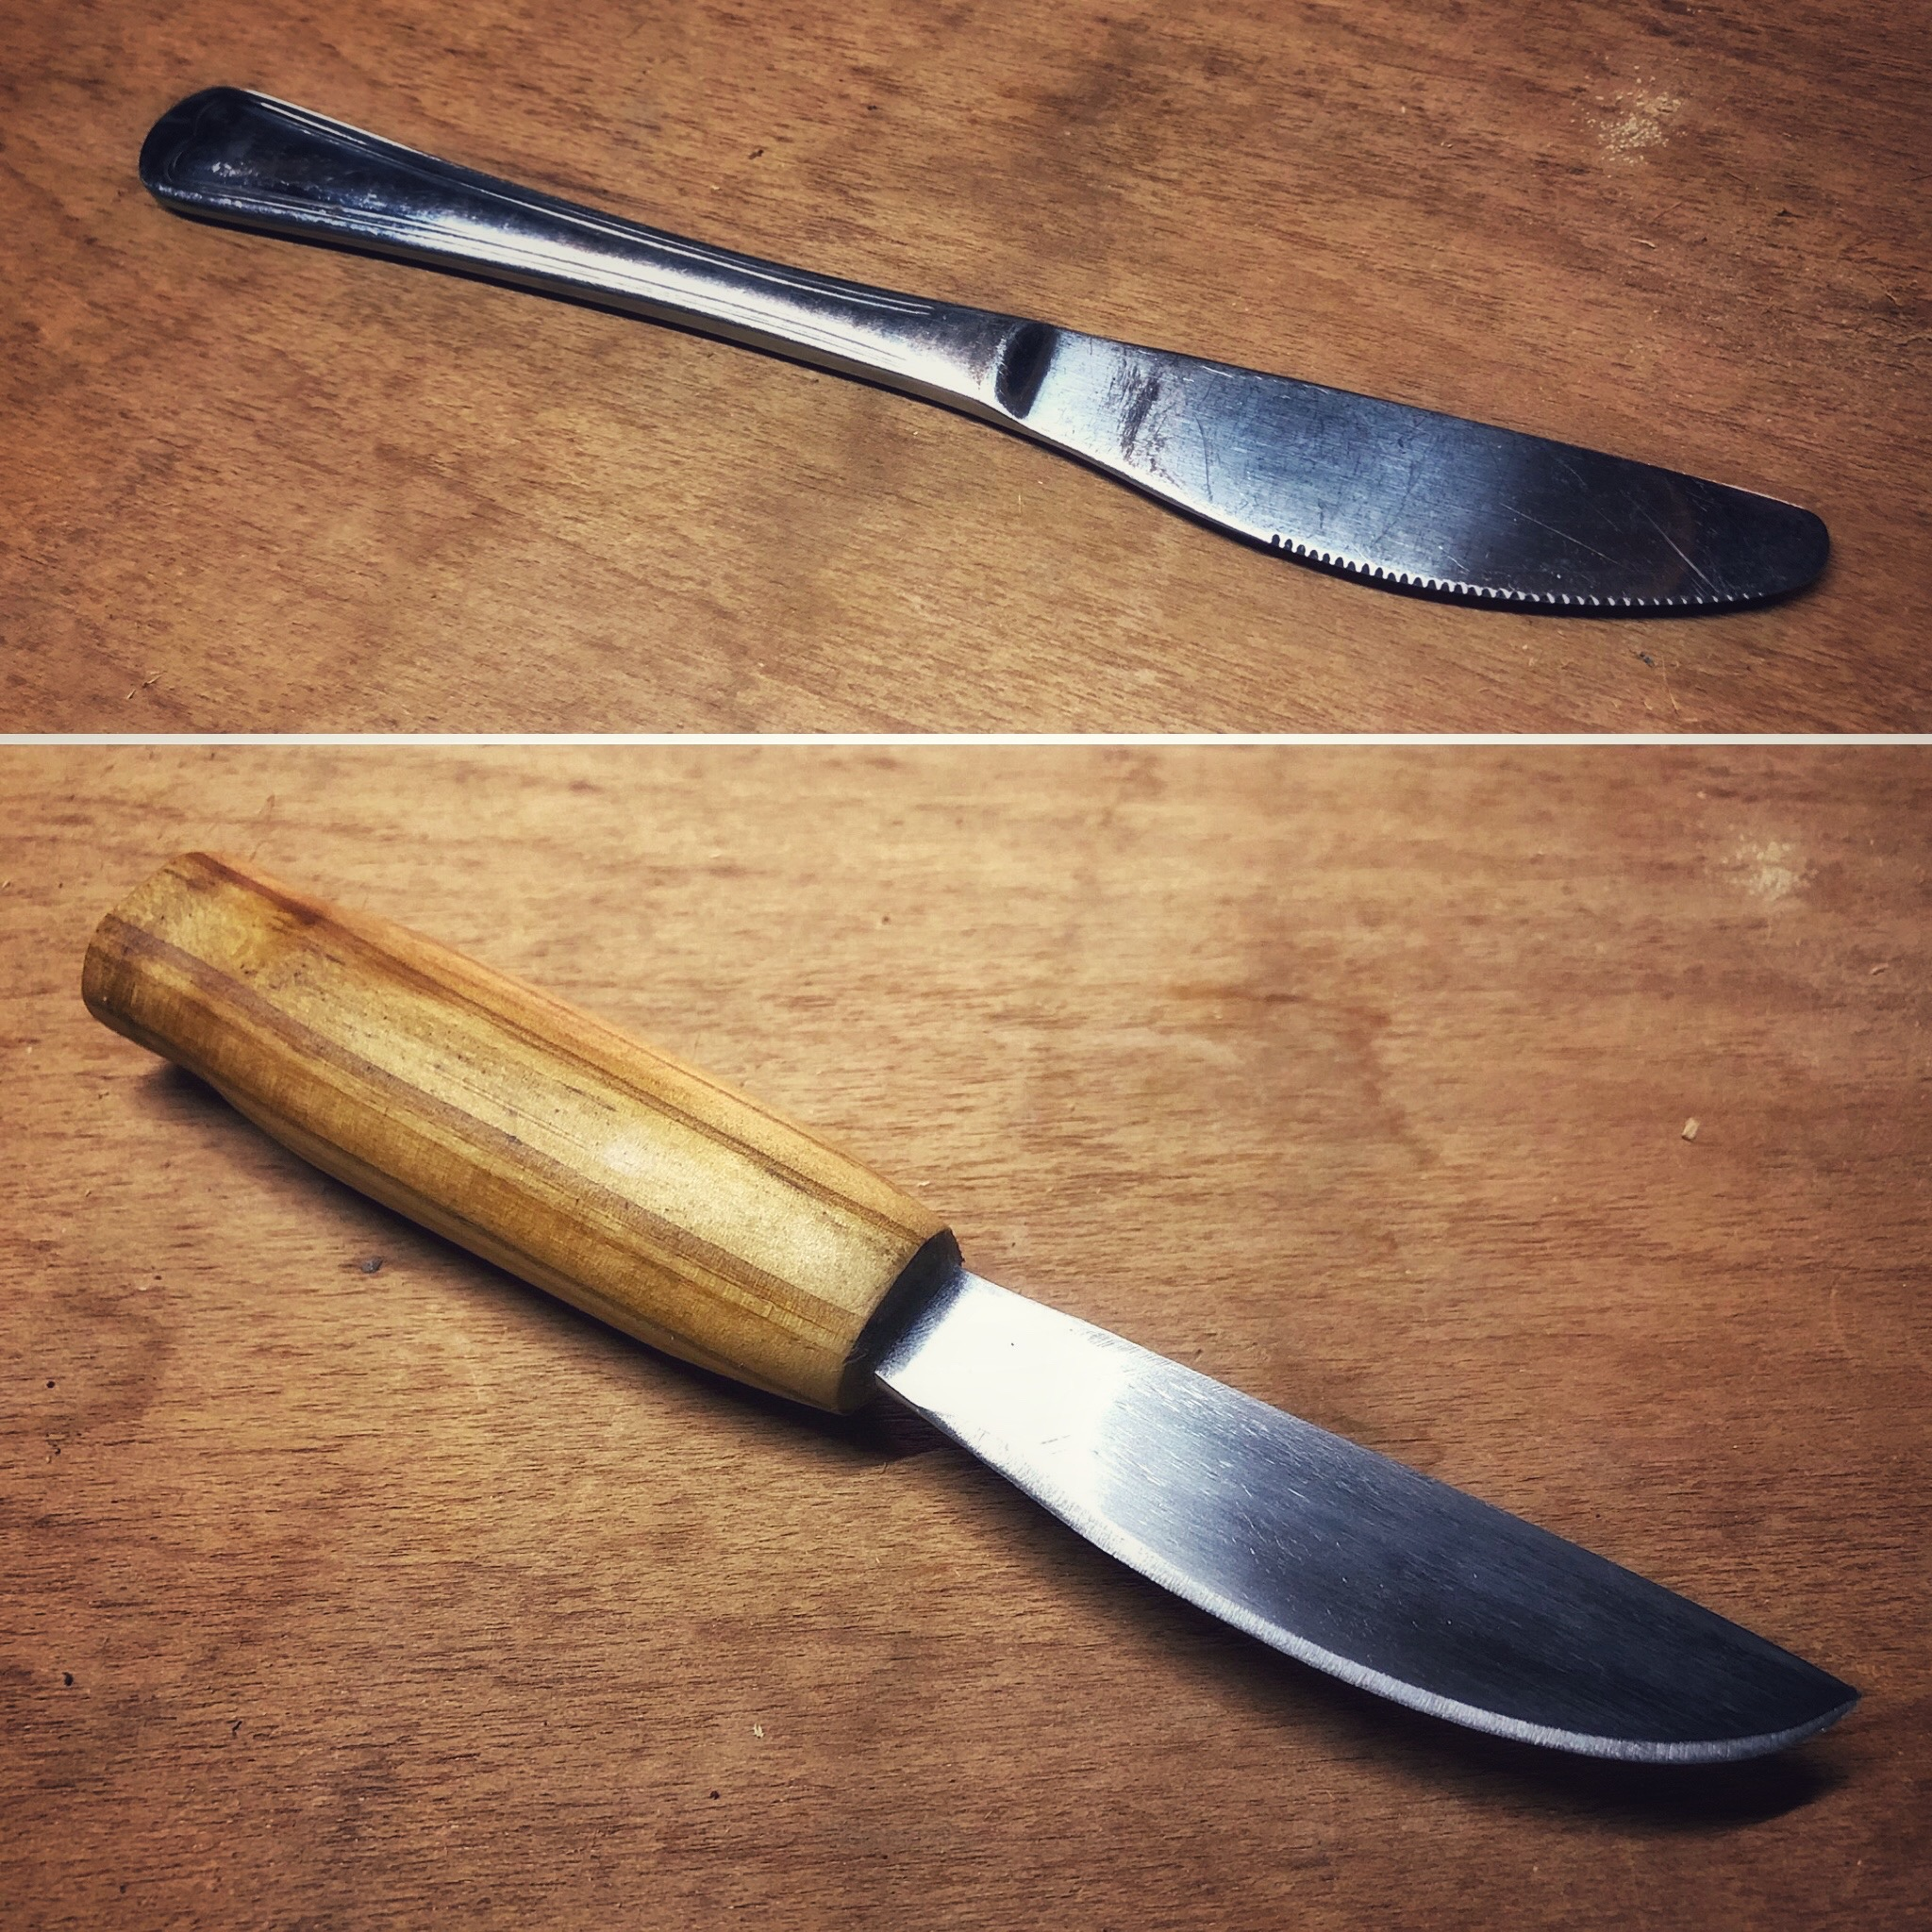 Turning a butter knife into a camping knife